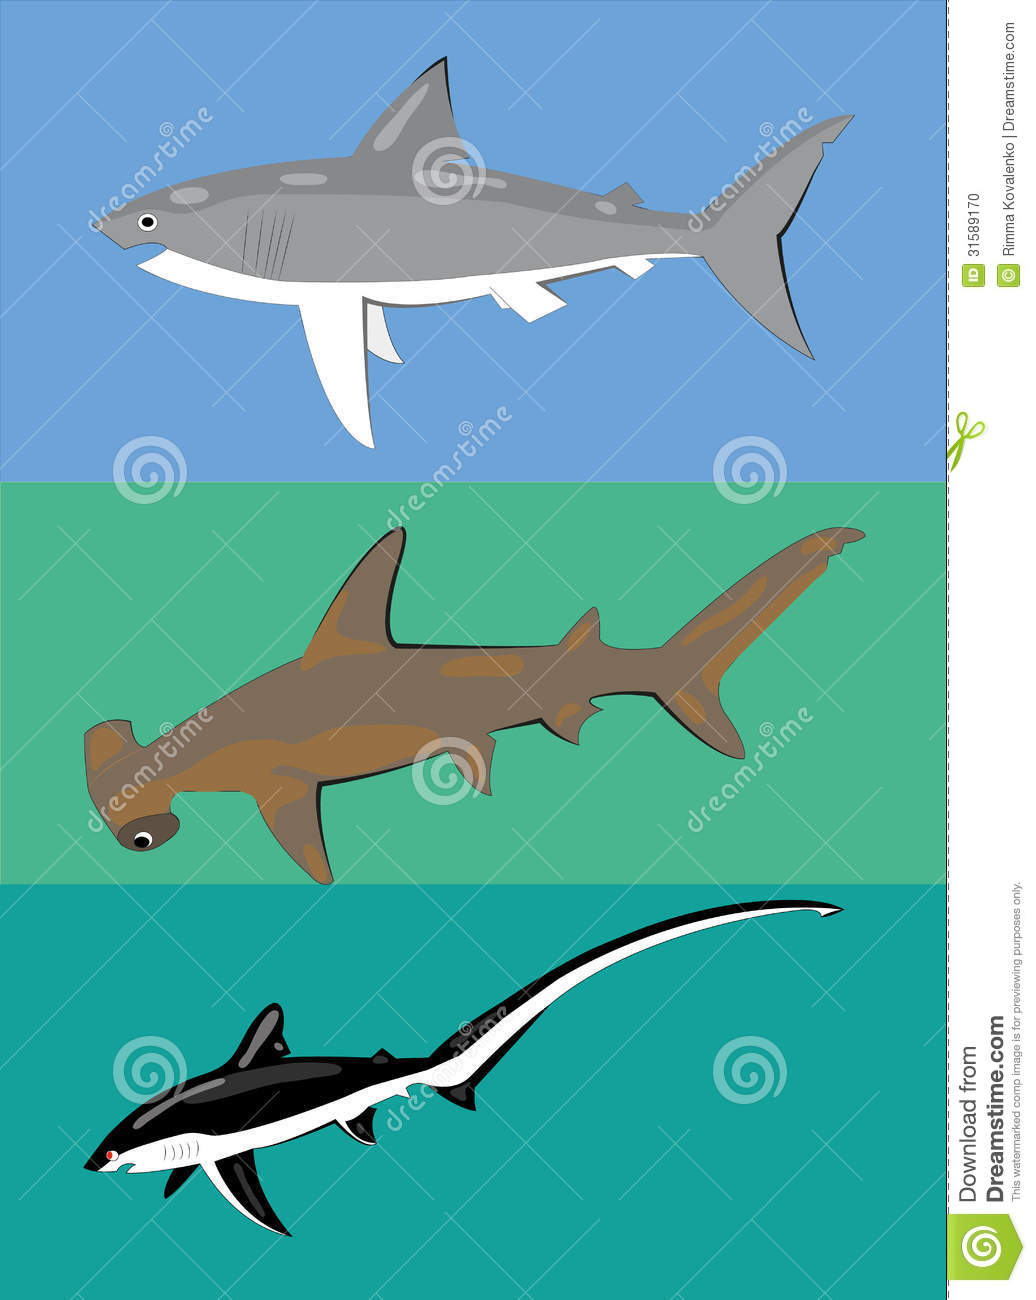 Different types of sharks. stock vector. Image of black ...